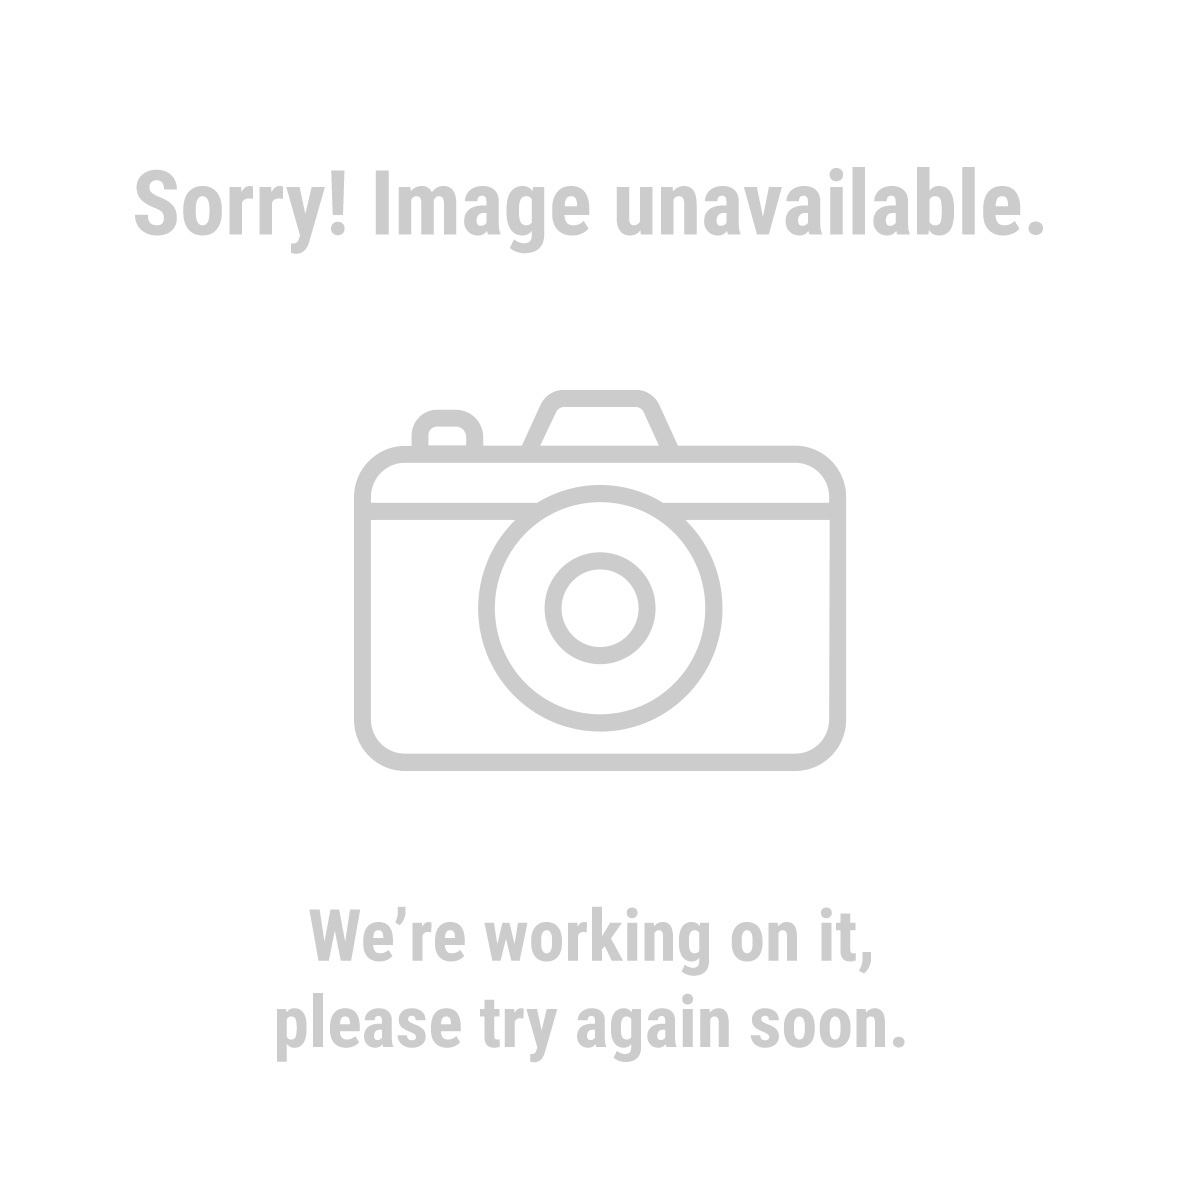 Cen-Tech 69294 12 Ft. 10 Gauge Heavy Duty Booster Cables